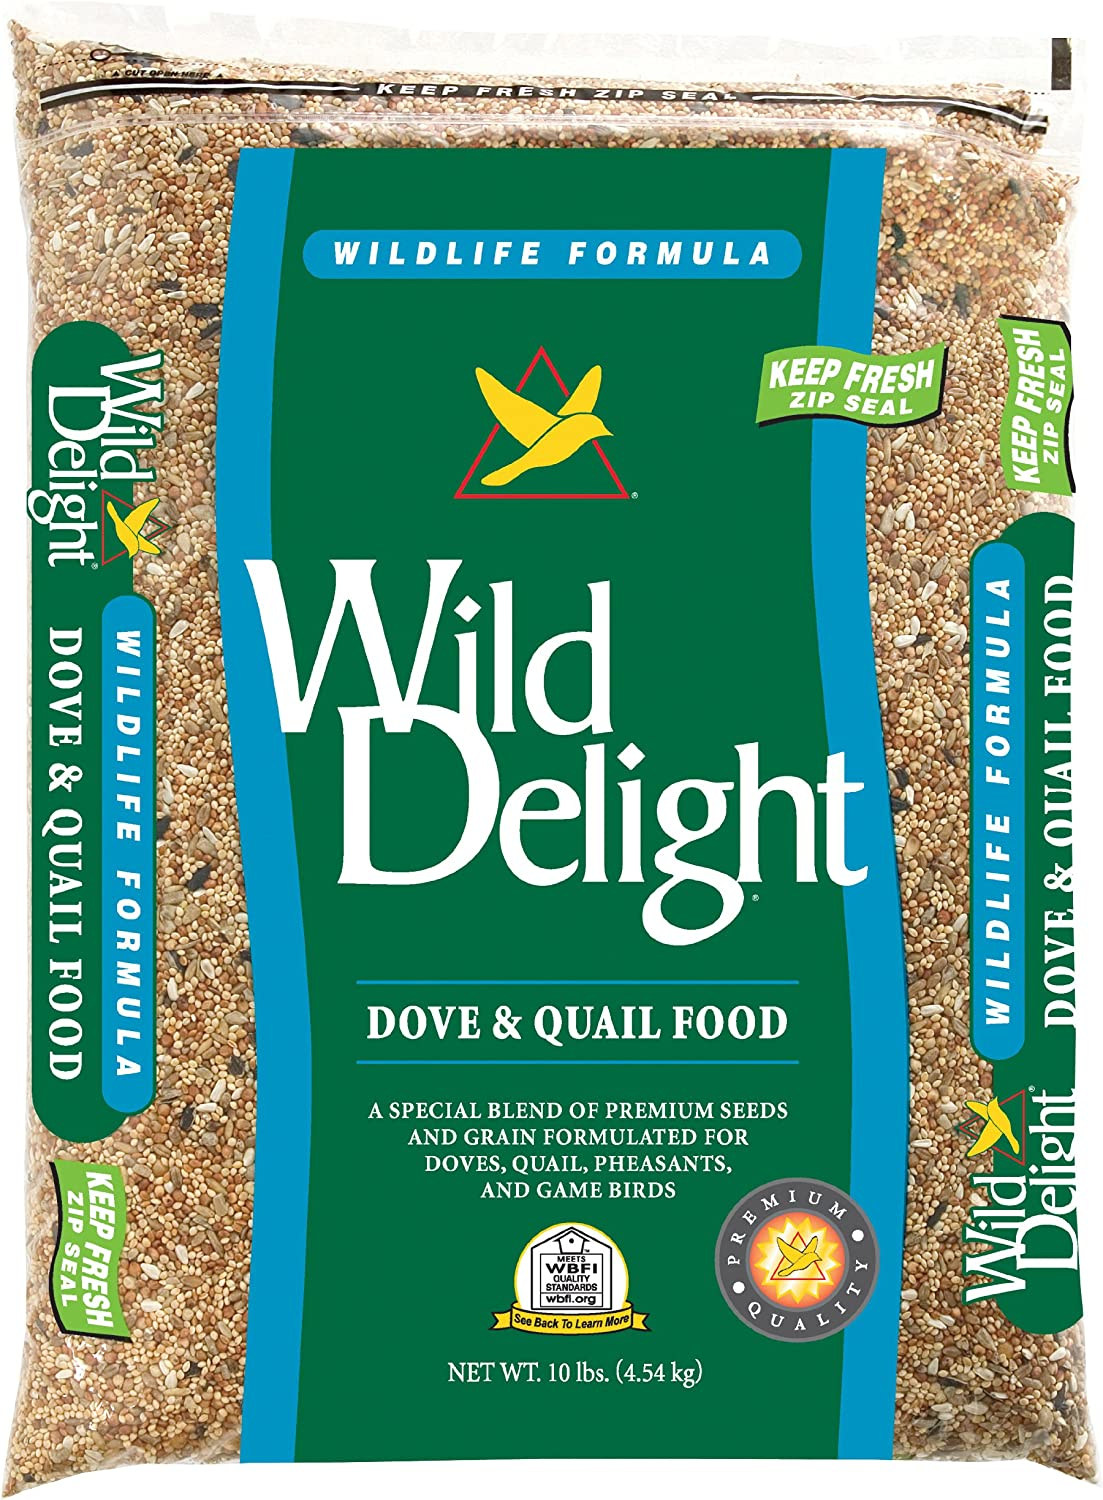 Wild Delight Dove & Quail Food, 10 lb